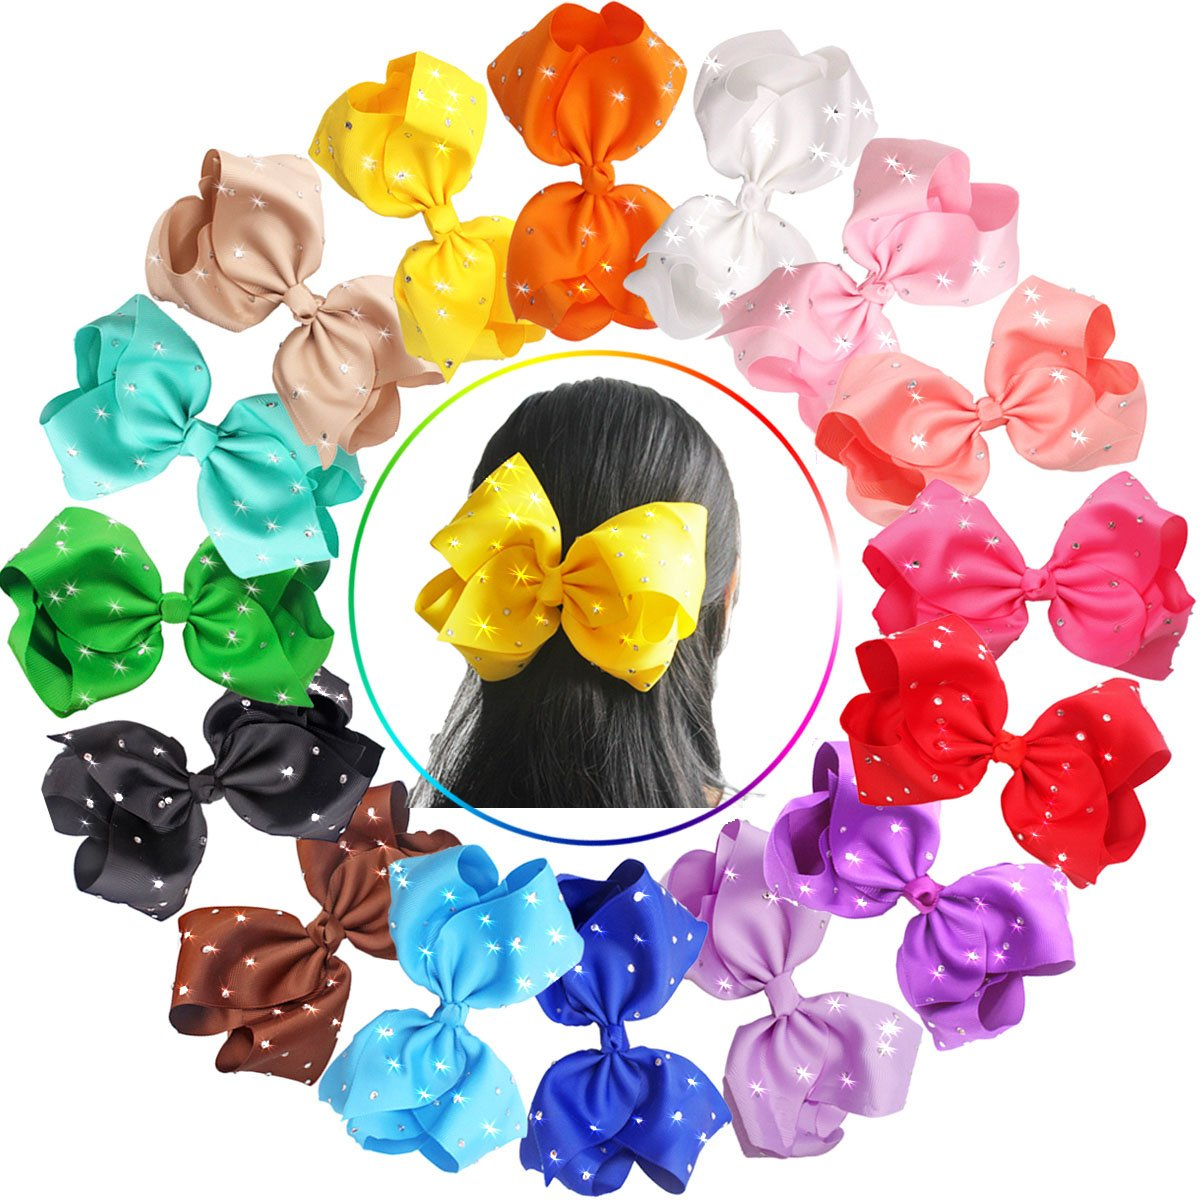 16pcs 8 inch Giant Glitter Sparkly Rhinestones Baby Girls Larger Big Grosgrain Ribbon Hair Bows Alligator Hair Clips